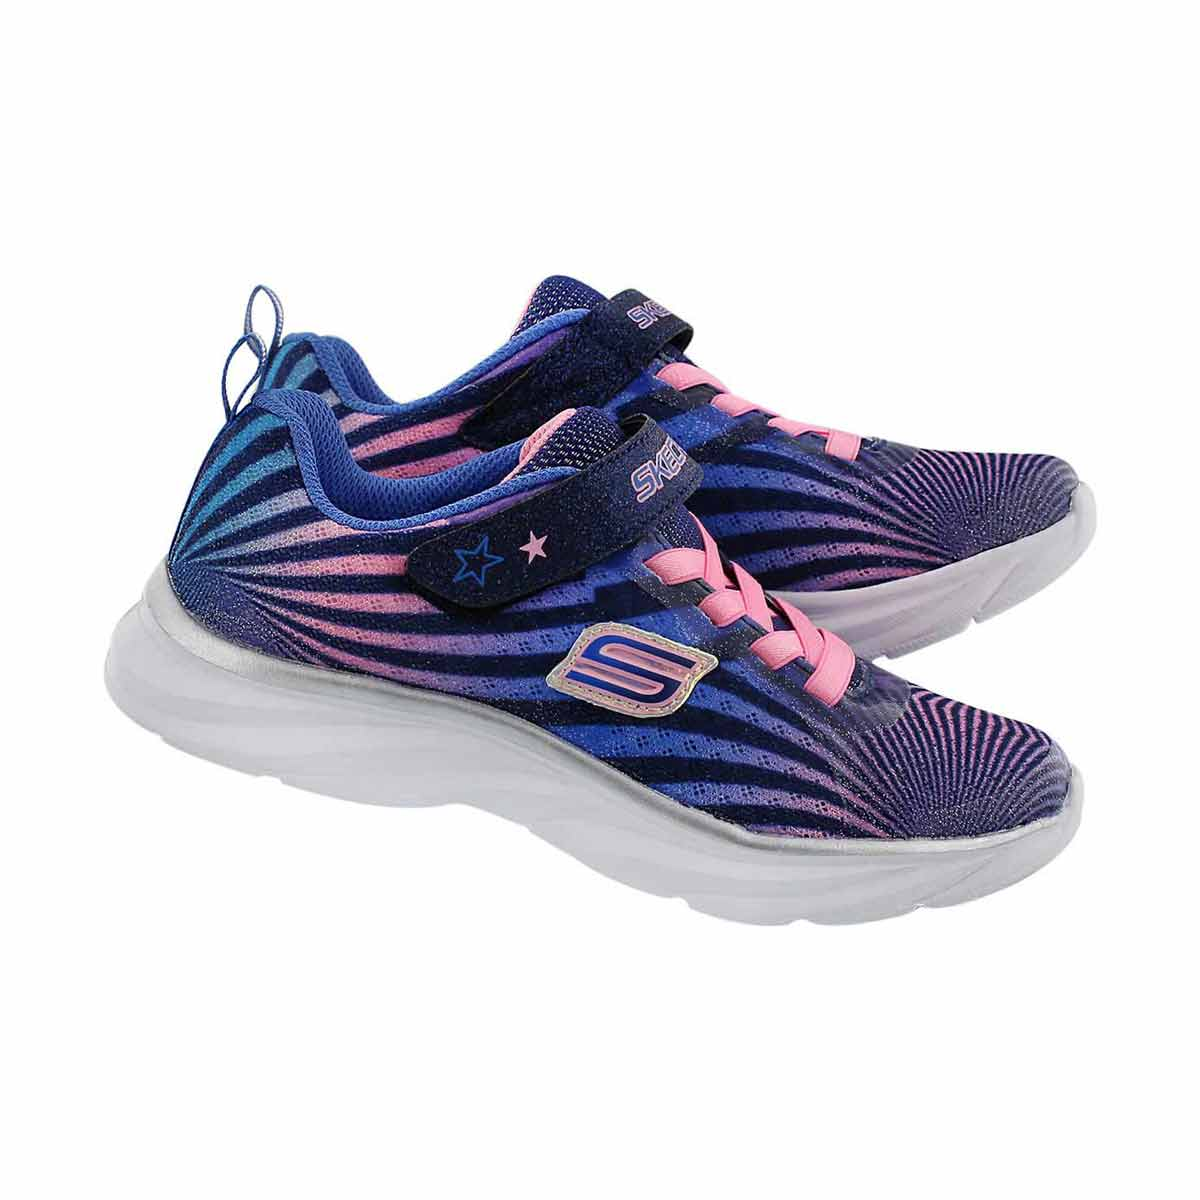 Grls Colorbeam nvy/pnk printed sneaker